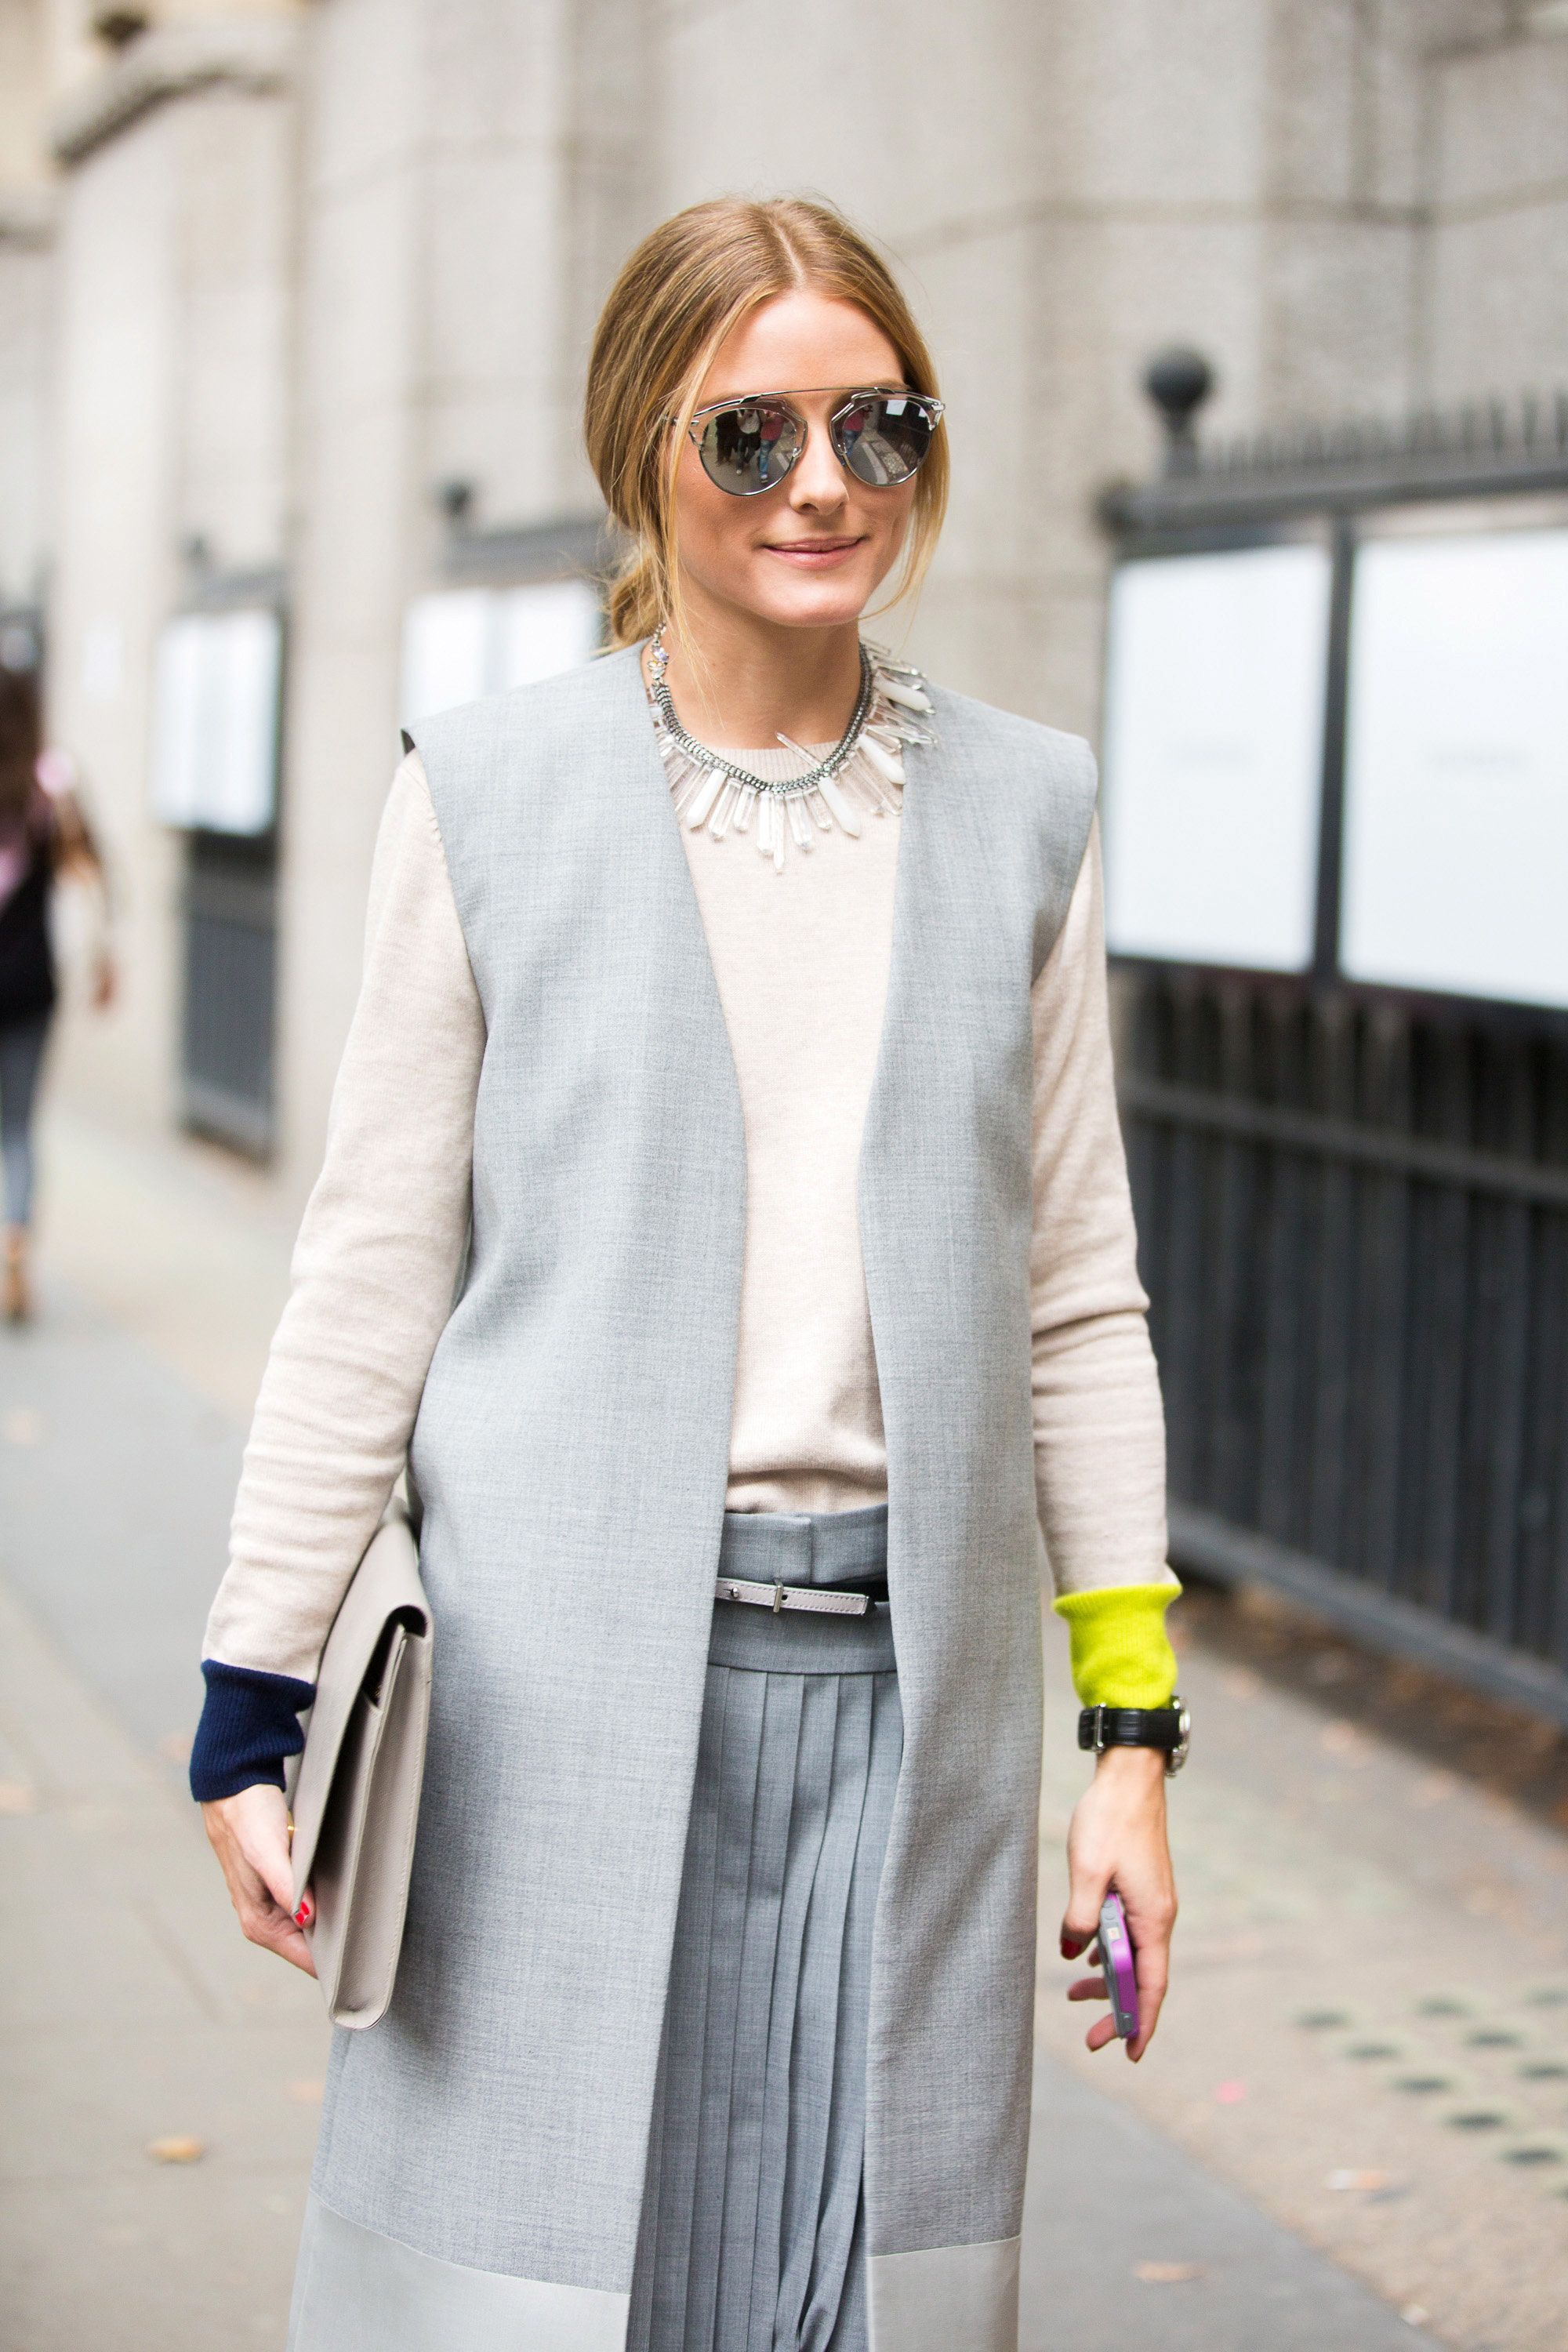 LONDON, ENGLAND - SEPTEMBER 13: Olivia Palermo exits the J.W. Anderson show on Day 2 of London Fashion Week Spring Summer 2015 on September 13, 2014 in London, England.  (Photo by Melodie Jeng/Getty Images)